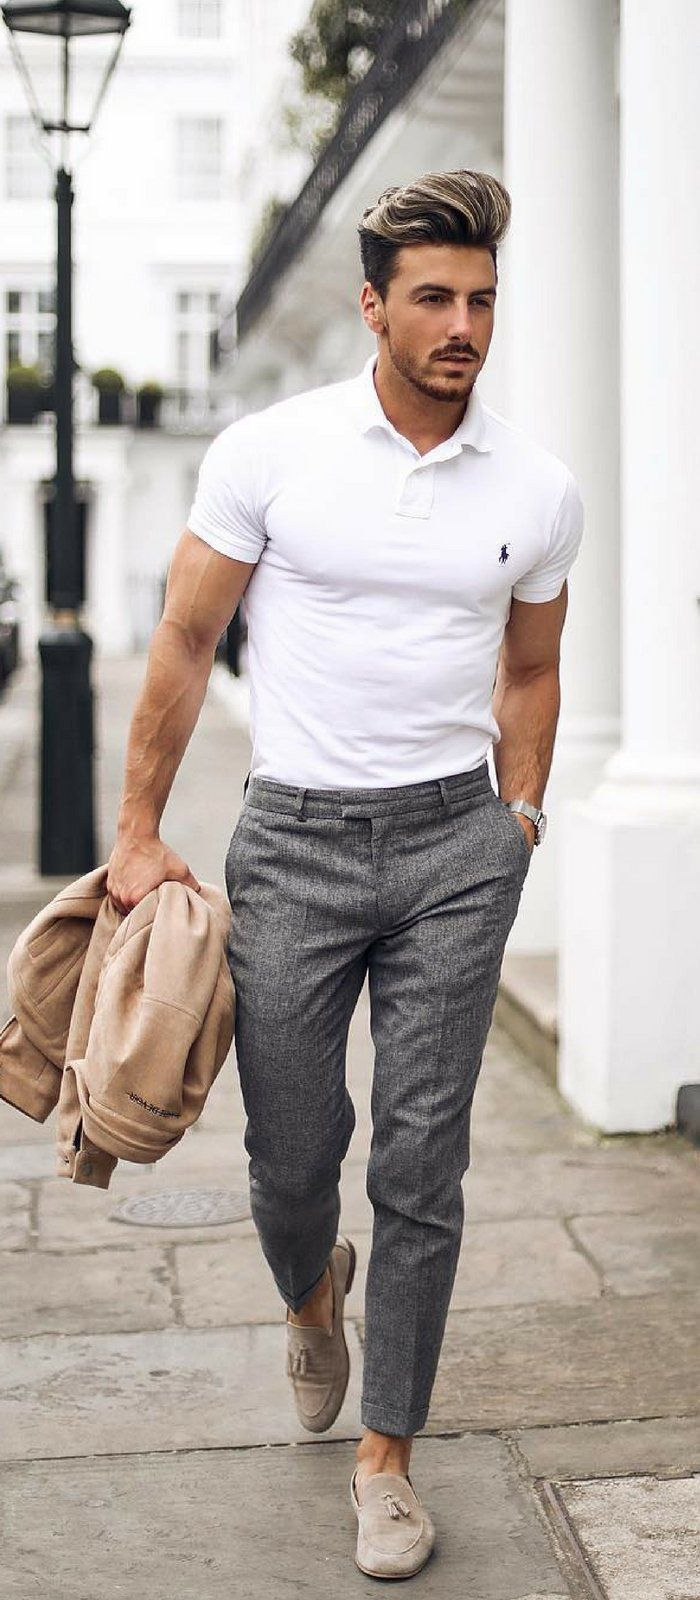 Summer Fashion 2018 : Business casual men Men's Fashion